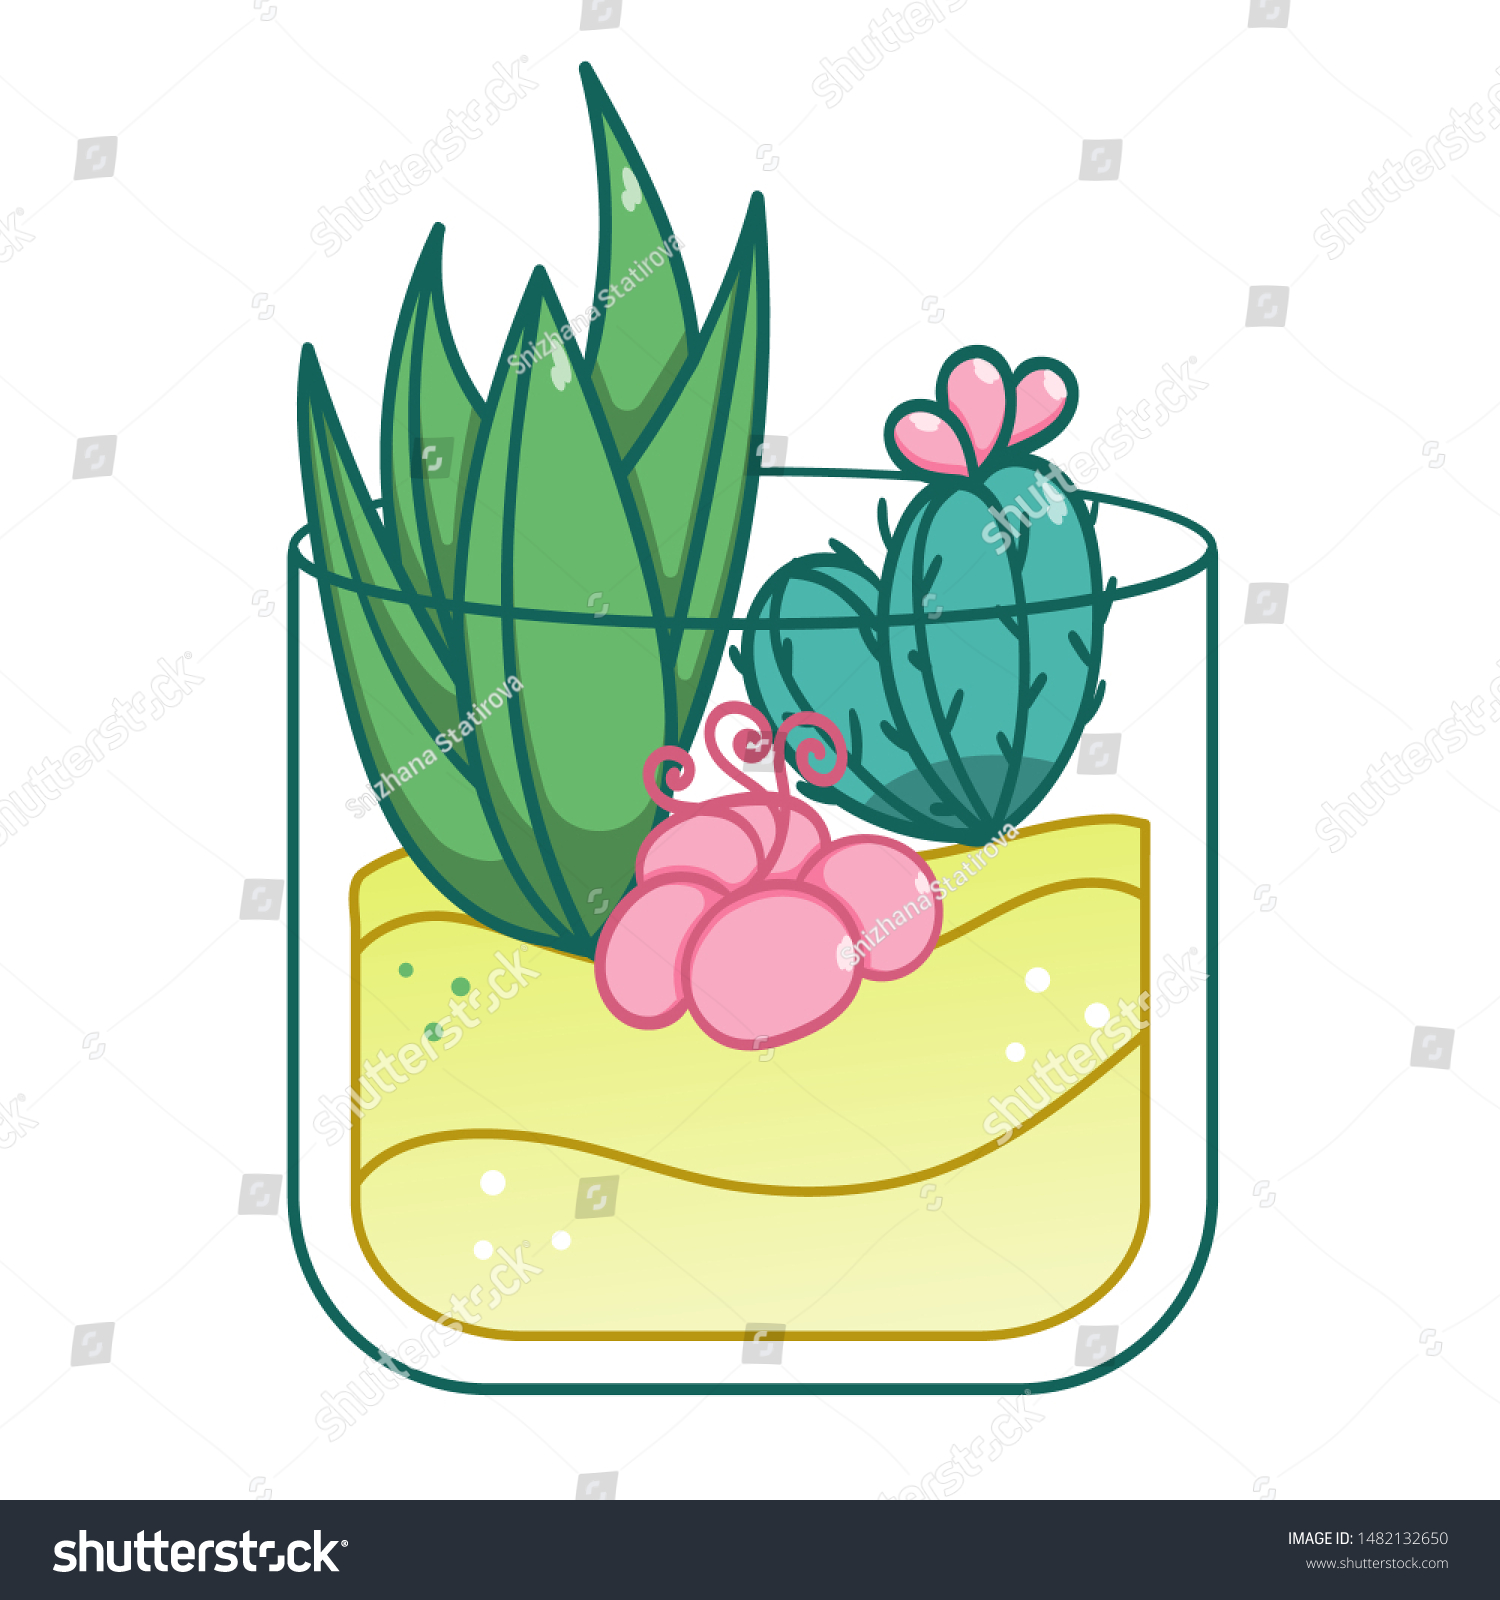 Cacti Glass Jar Terrarium Growing Plans Stock Vector Royalty Free 1482132650